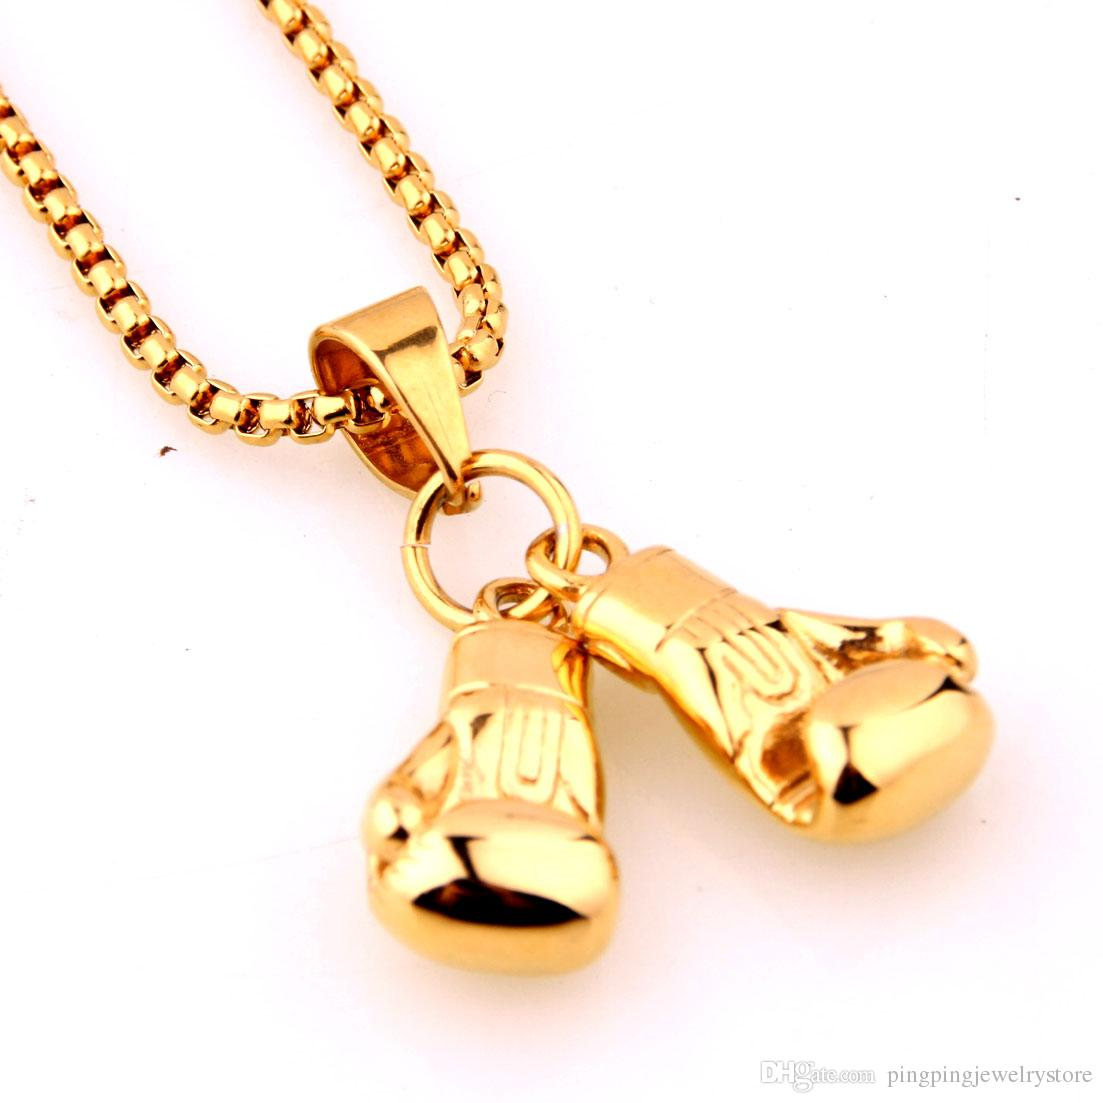 Wholesale fashion jewelry 316l stainless steel gold boxing glove wholesale fashion jewelry 316l stainless steel gold boxing glove pendant neklace gold tone mens gold chains necklace charms from pingpingjewelrystore aloadofball Image collections